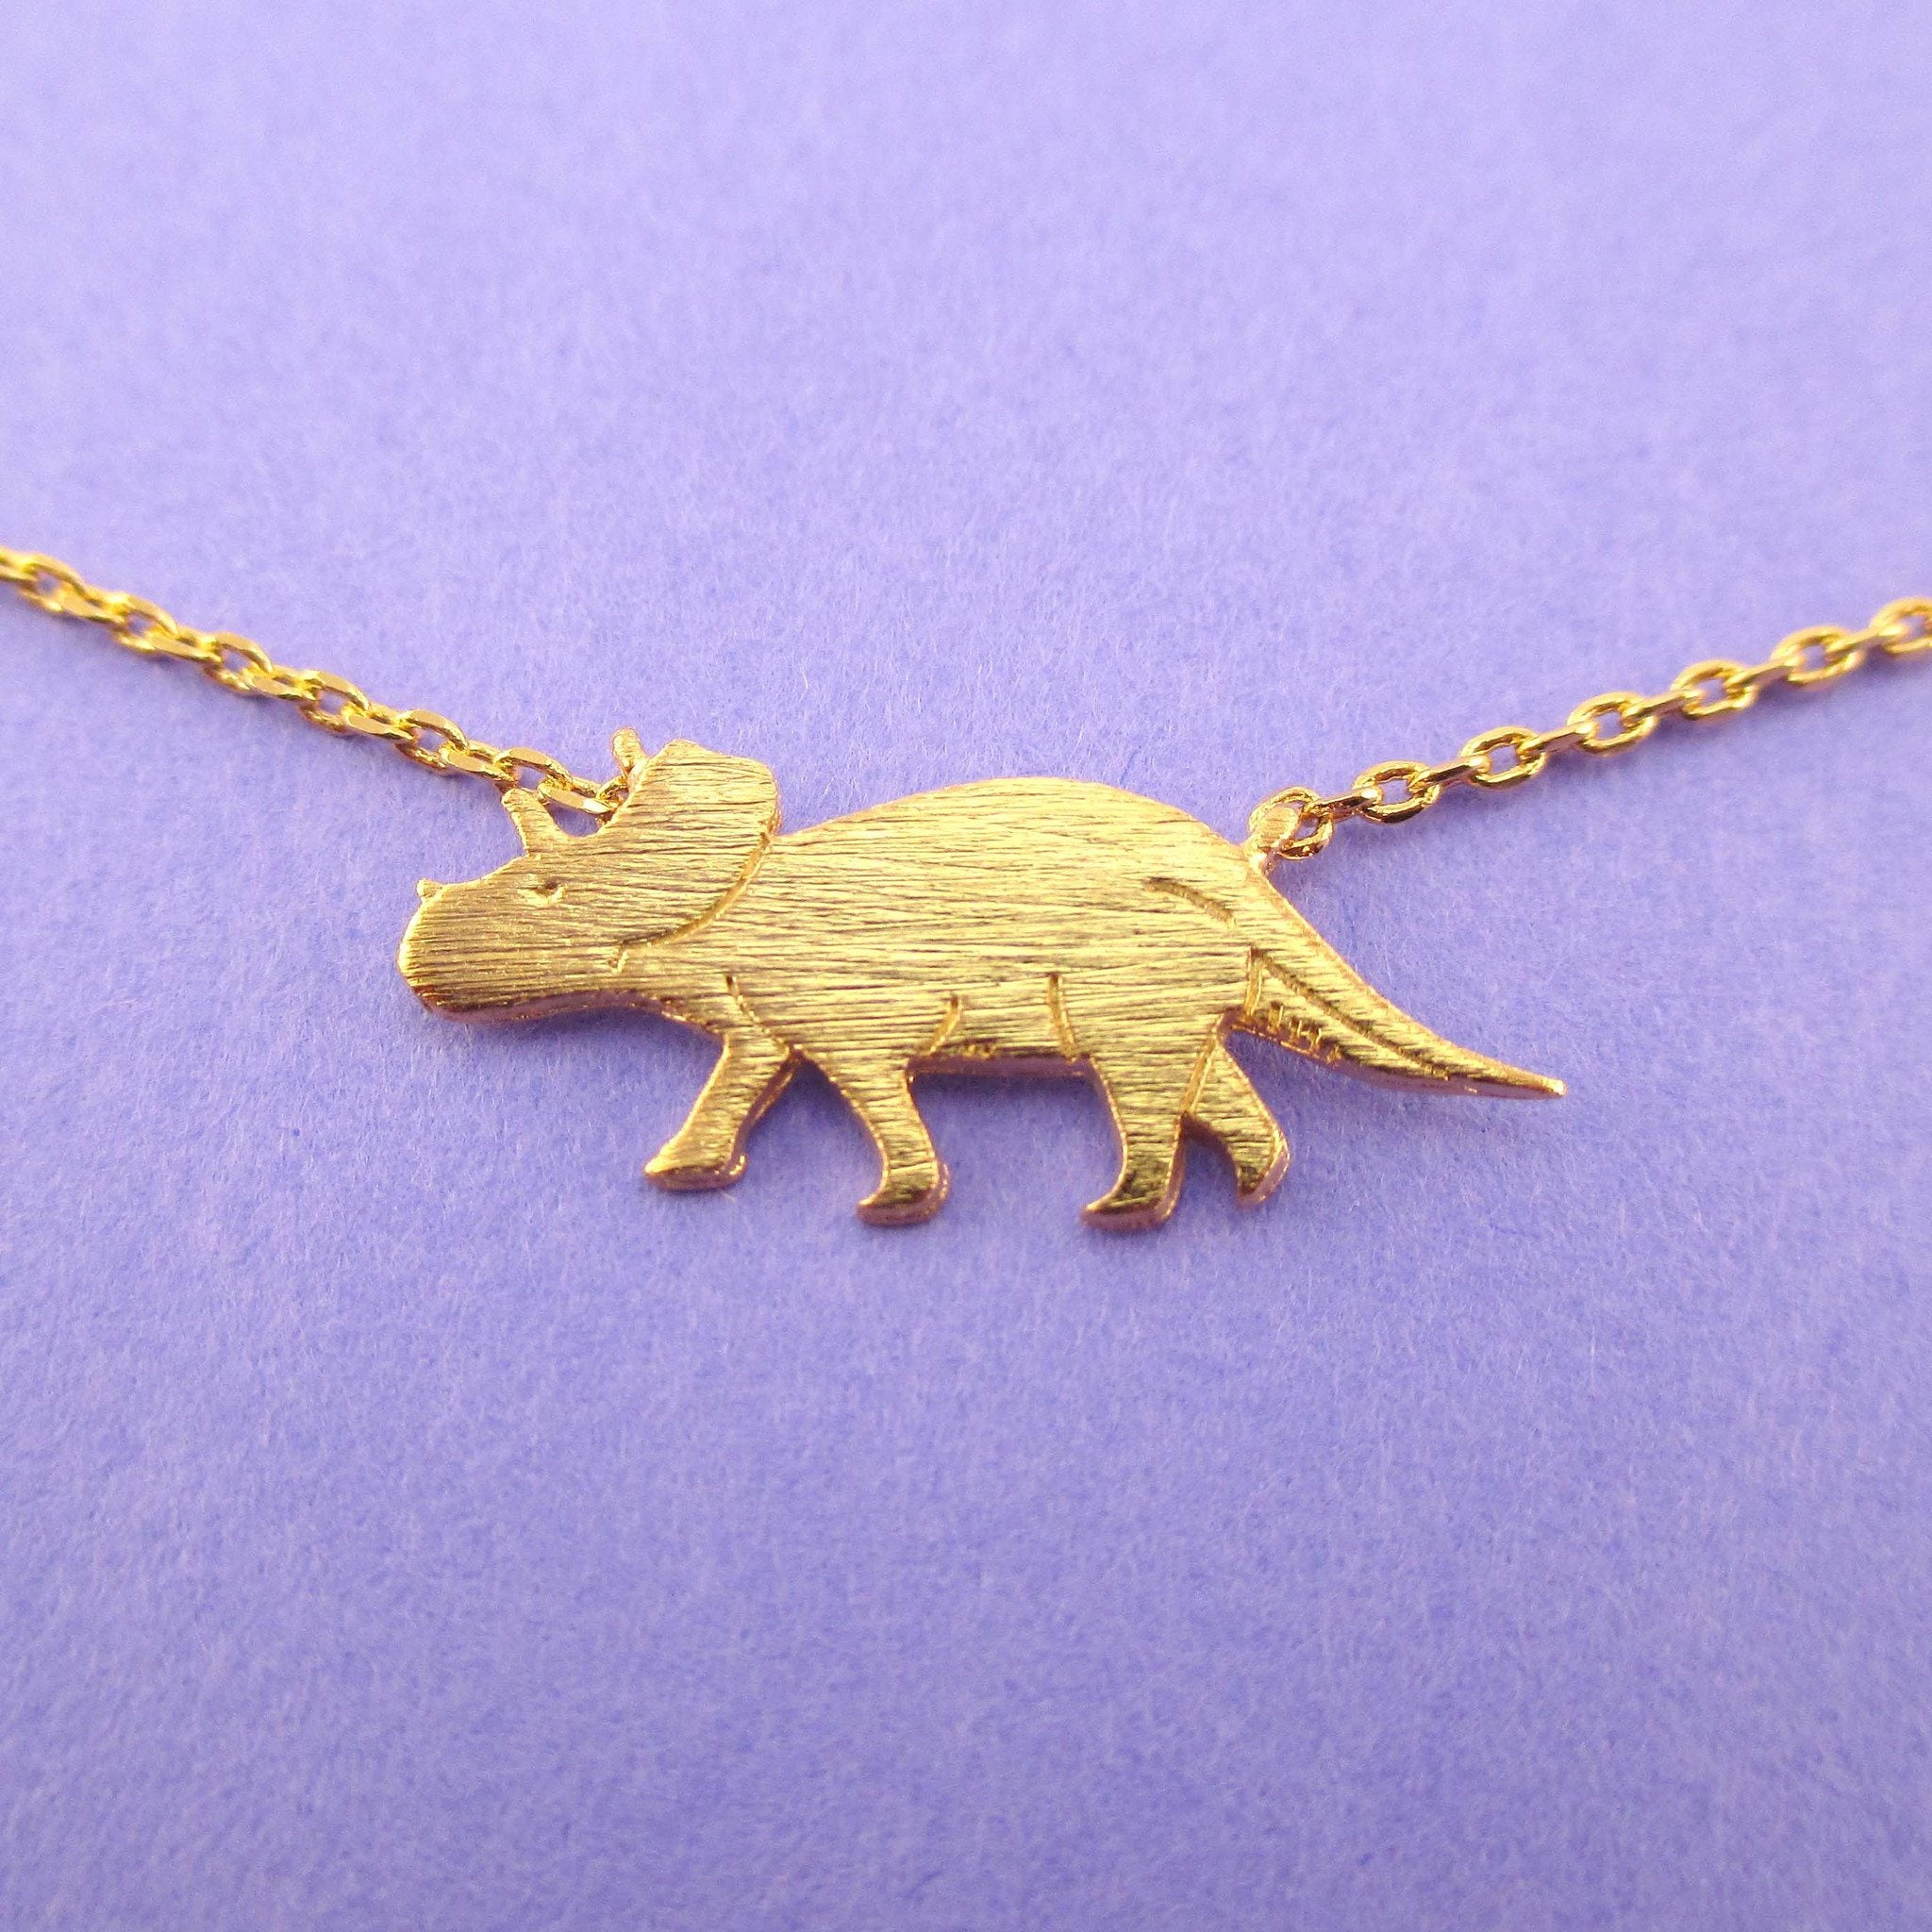 Triceratops Dinosaur Shaped Jurassic World Themed Necklace in Gold